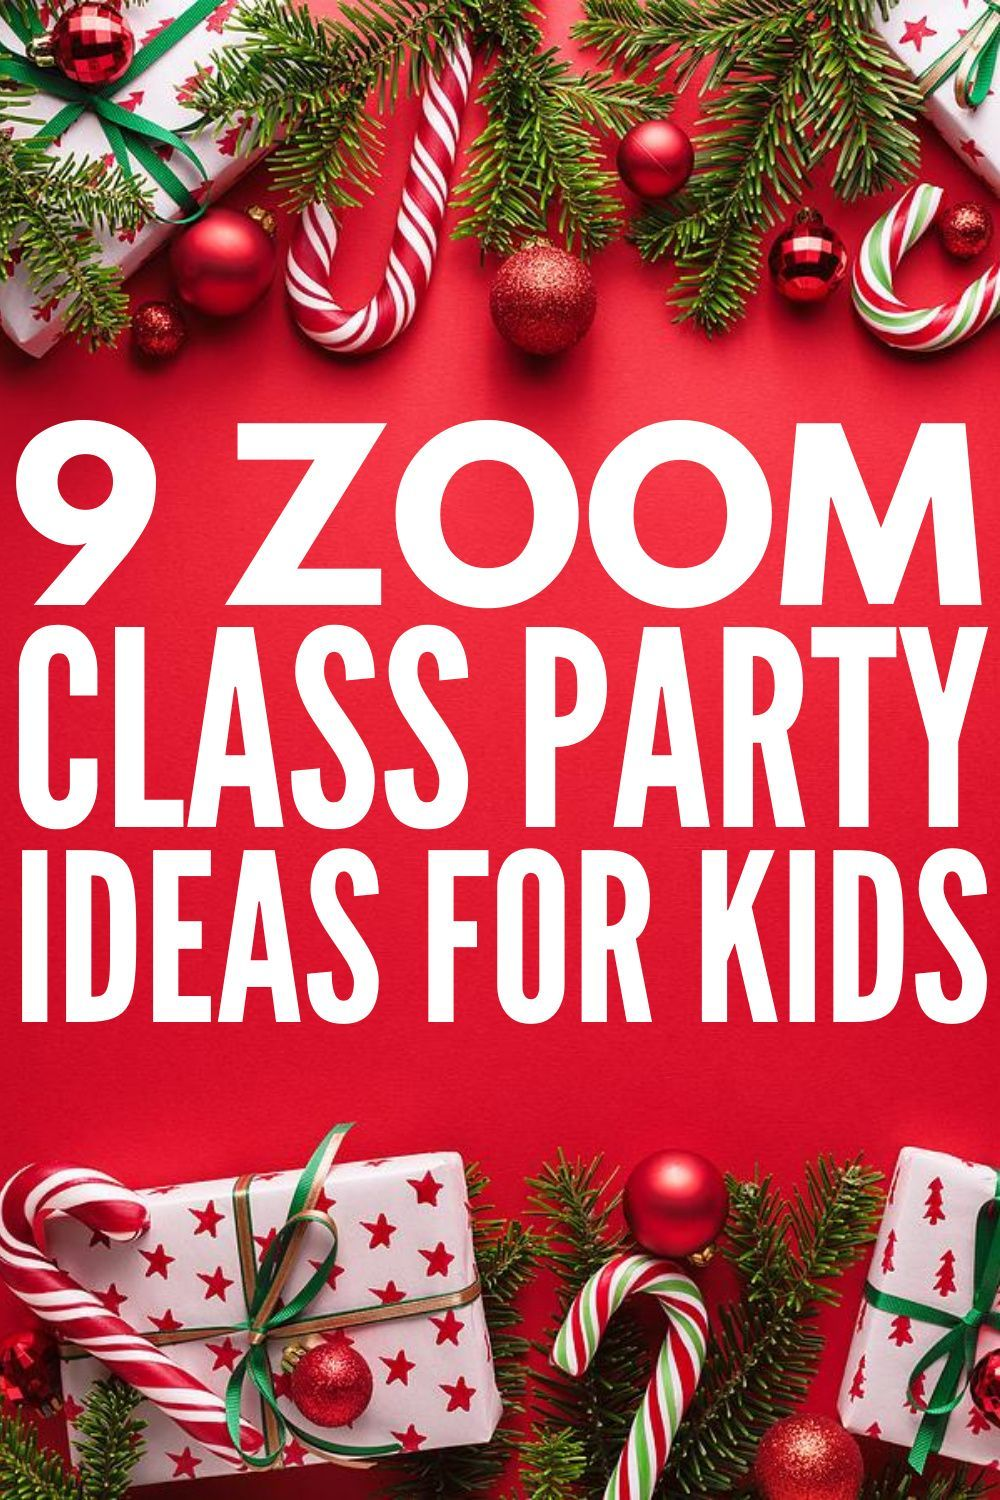 9 Easy And Fun Virtual Classroom Party Ideas Your Students Will Love In 2020 School Christmas Party Classroom Party Christmas School